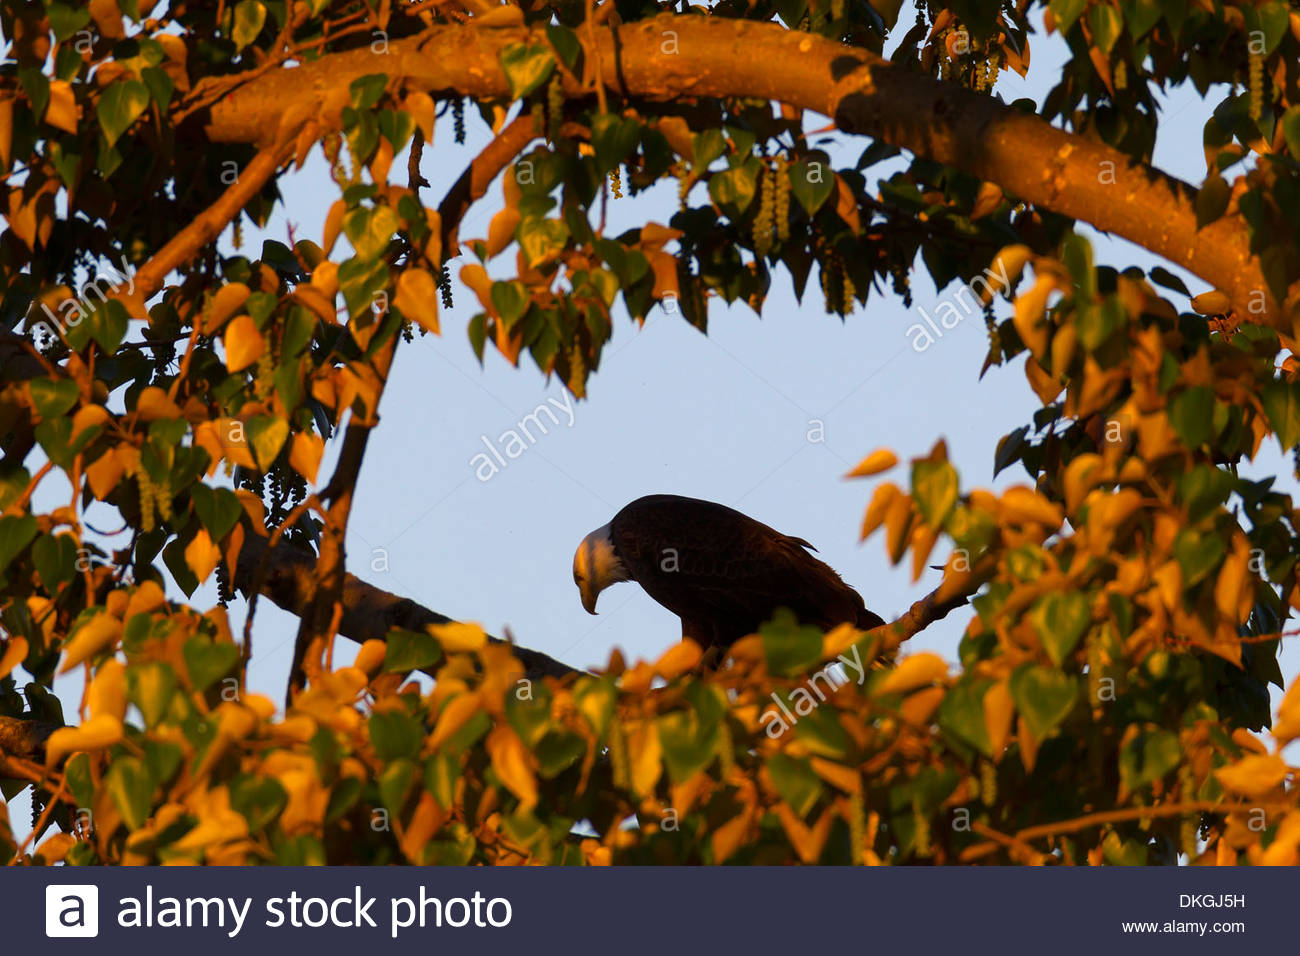 An adult bald eagle (Haliaeetus leucocephalus) looks down in search of food from its perch in a cottonwood tree. - Stock Image